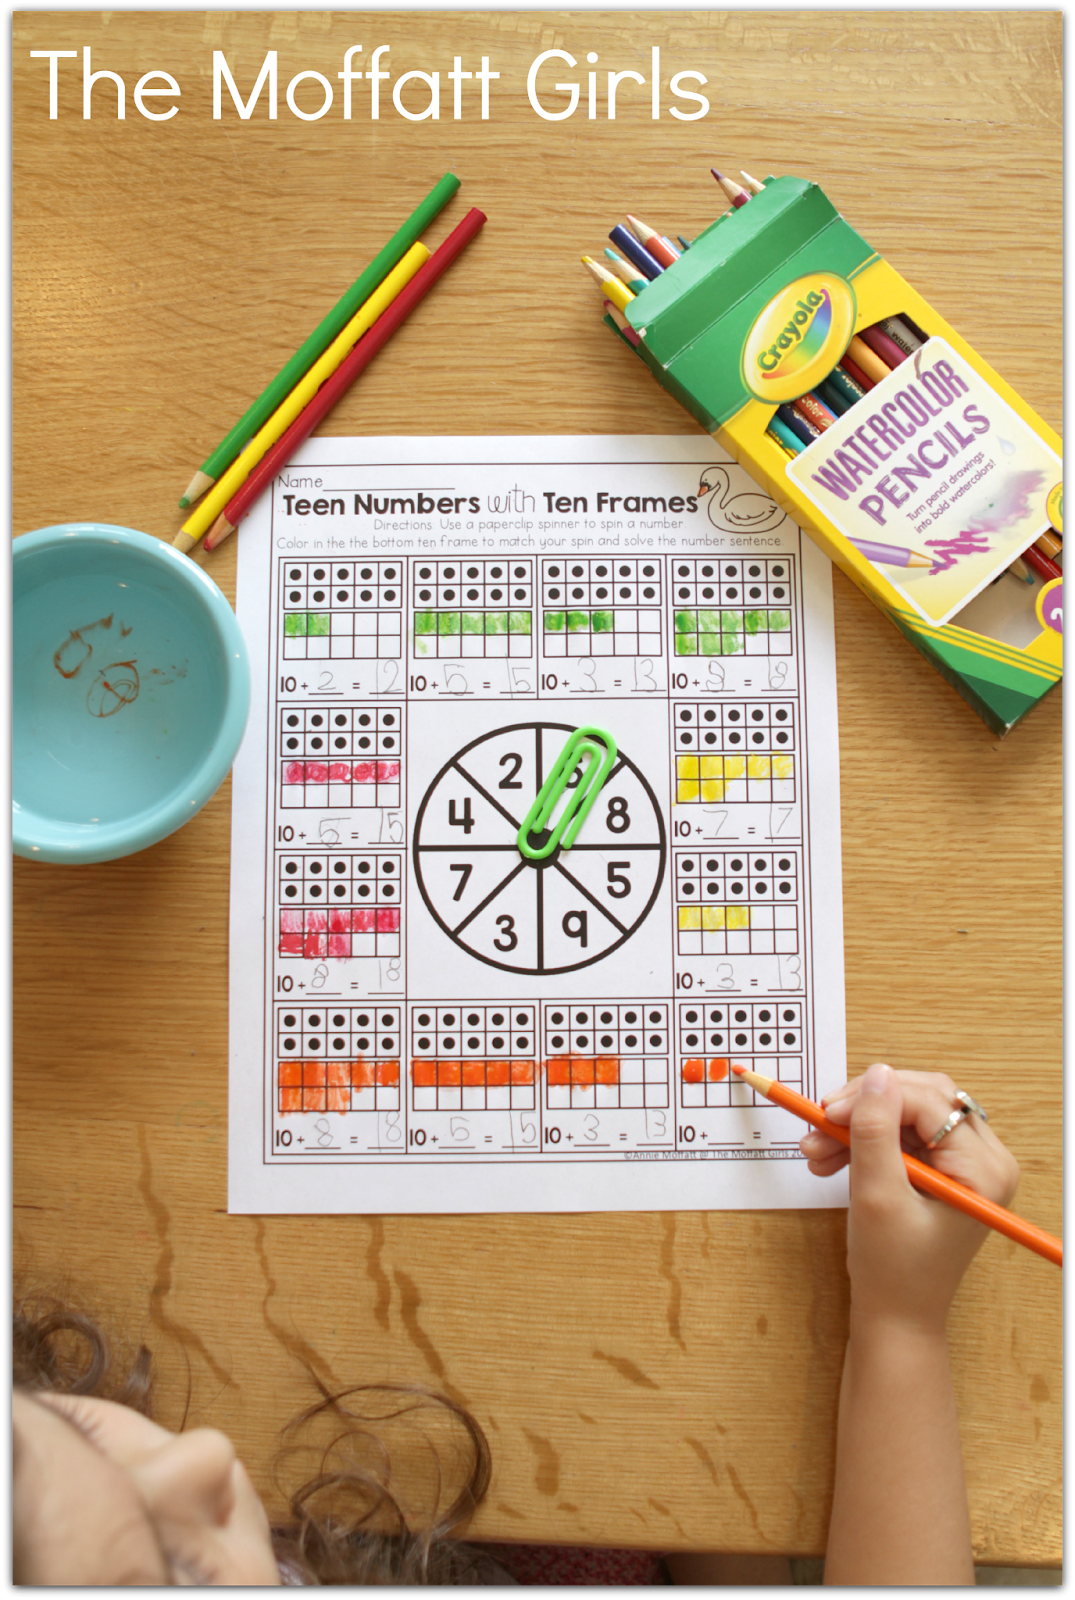 Teen Numbers With Ten Frames Build Math Skills With This Fun Game Spin A Number Color In The